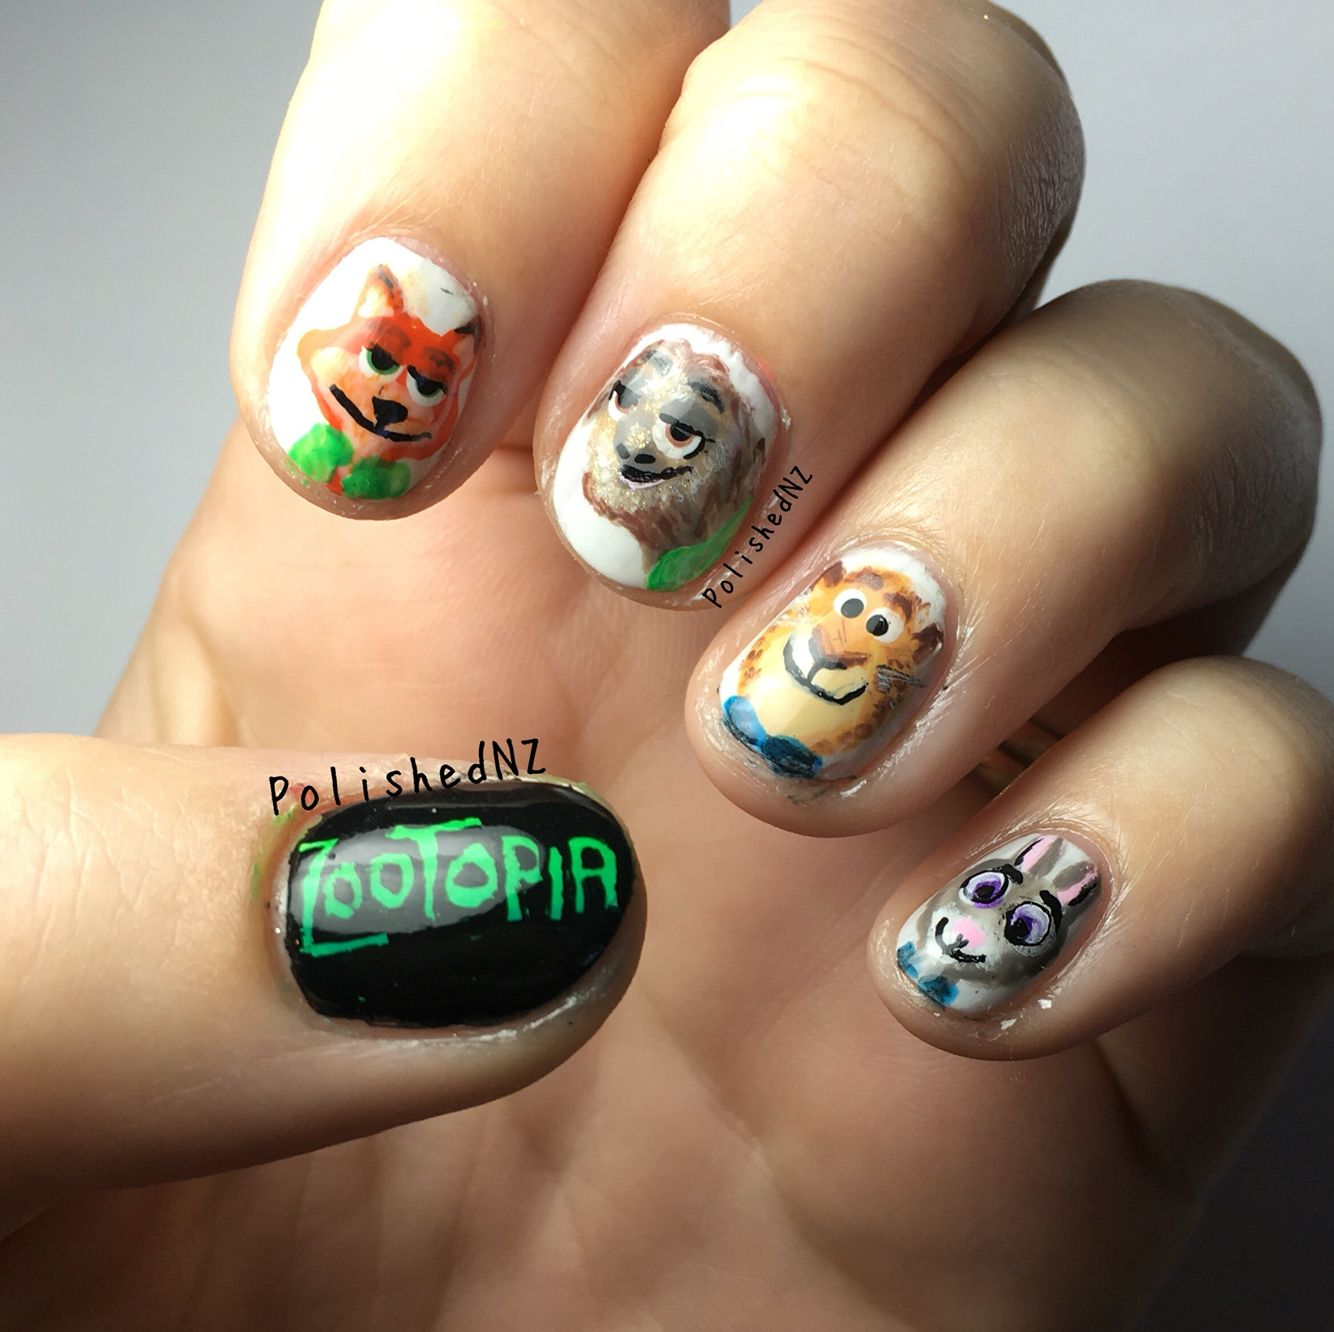 Zootopia Nail Art By Polishednz Video On Youtube Movie Character